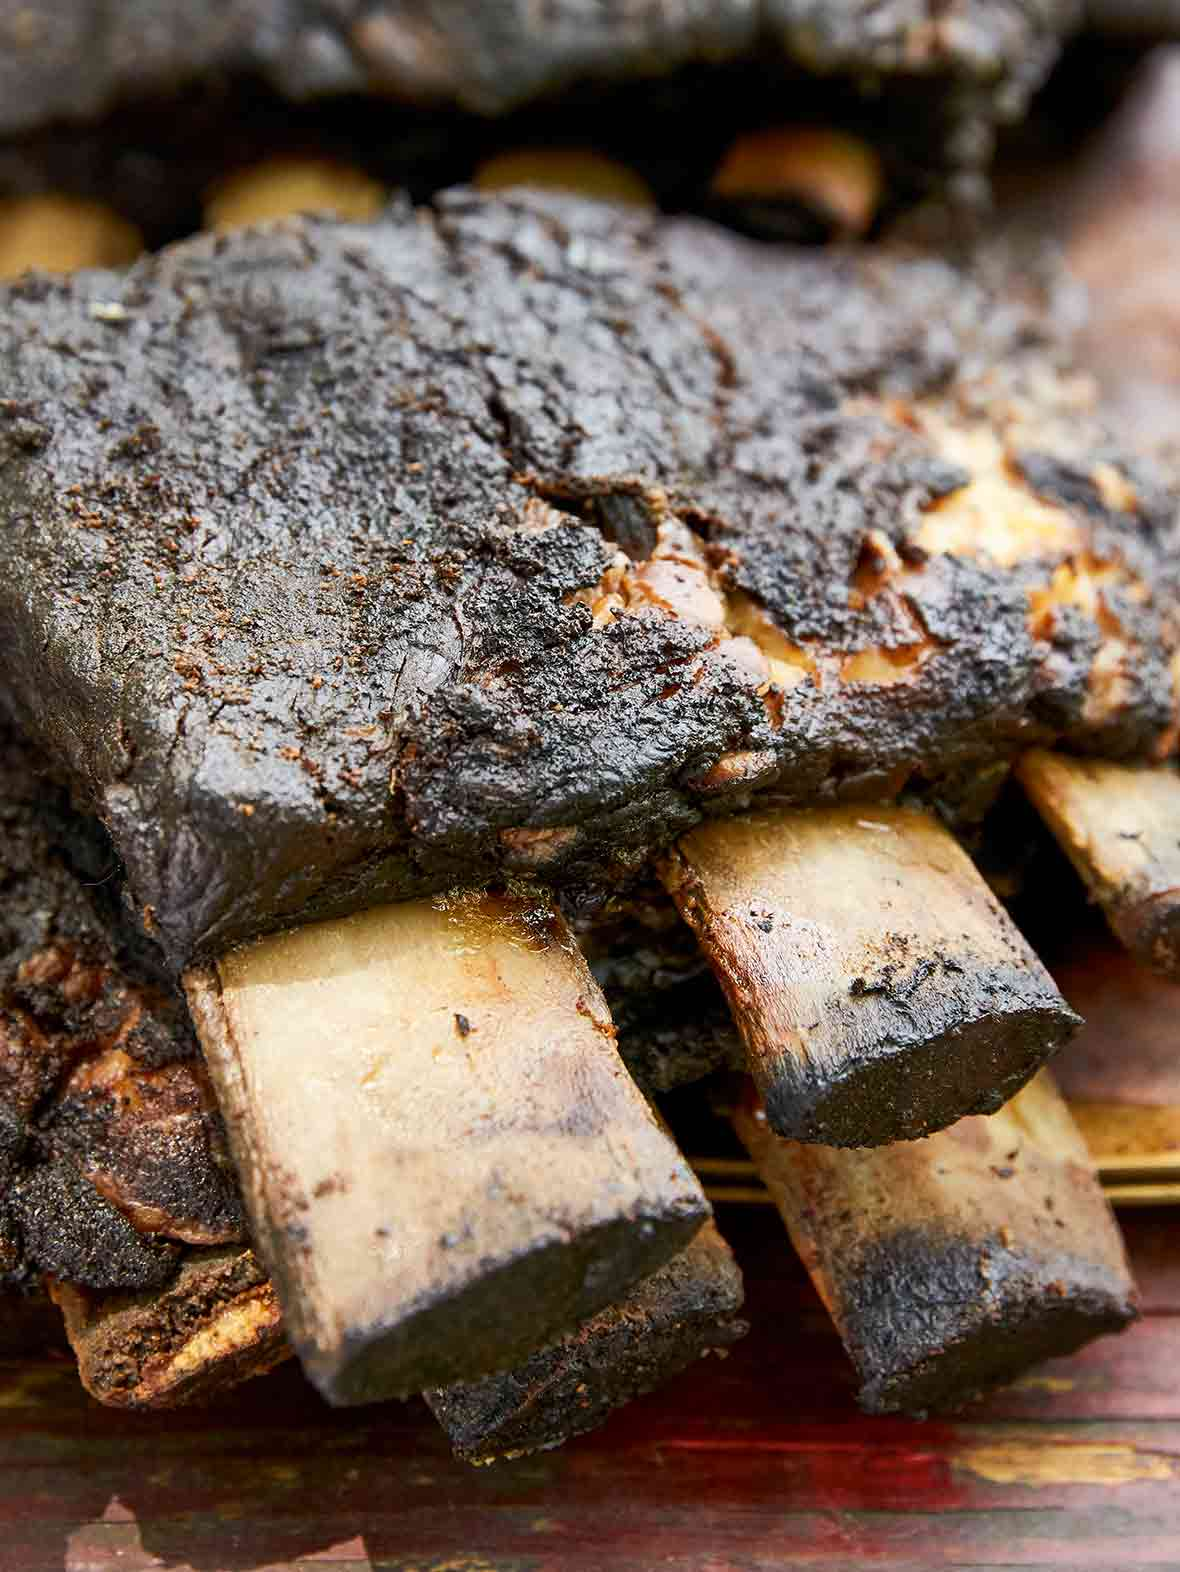 Two slabs of bone-in smoked beef ribs.